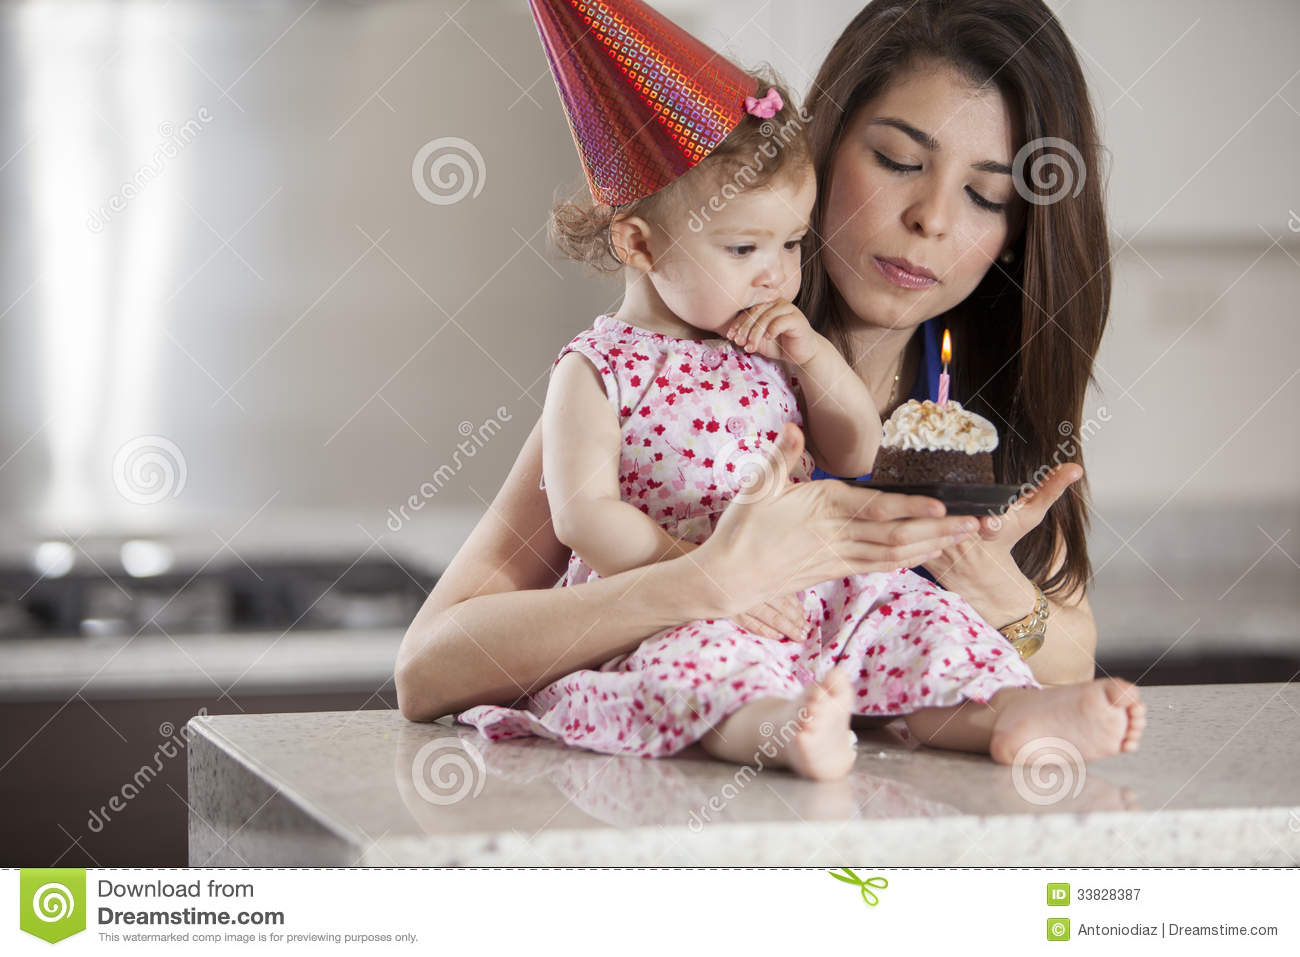 Excellent Make A Birthday Wish Stock Image Image Of Eating Girl 33828387 Personalised Birthday Cards Veneteletsinfo